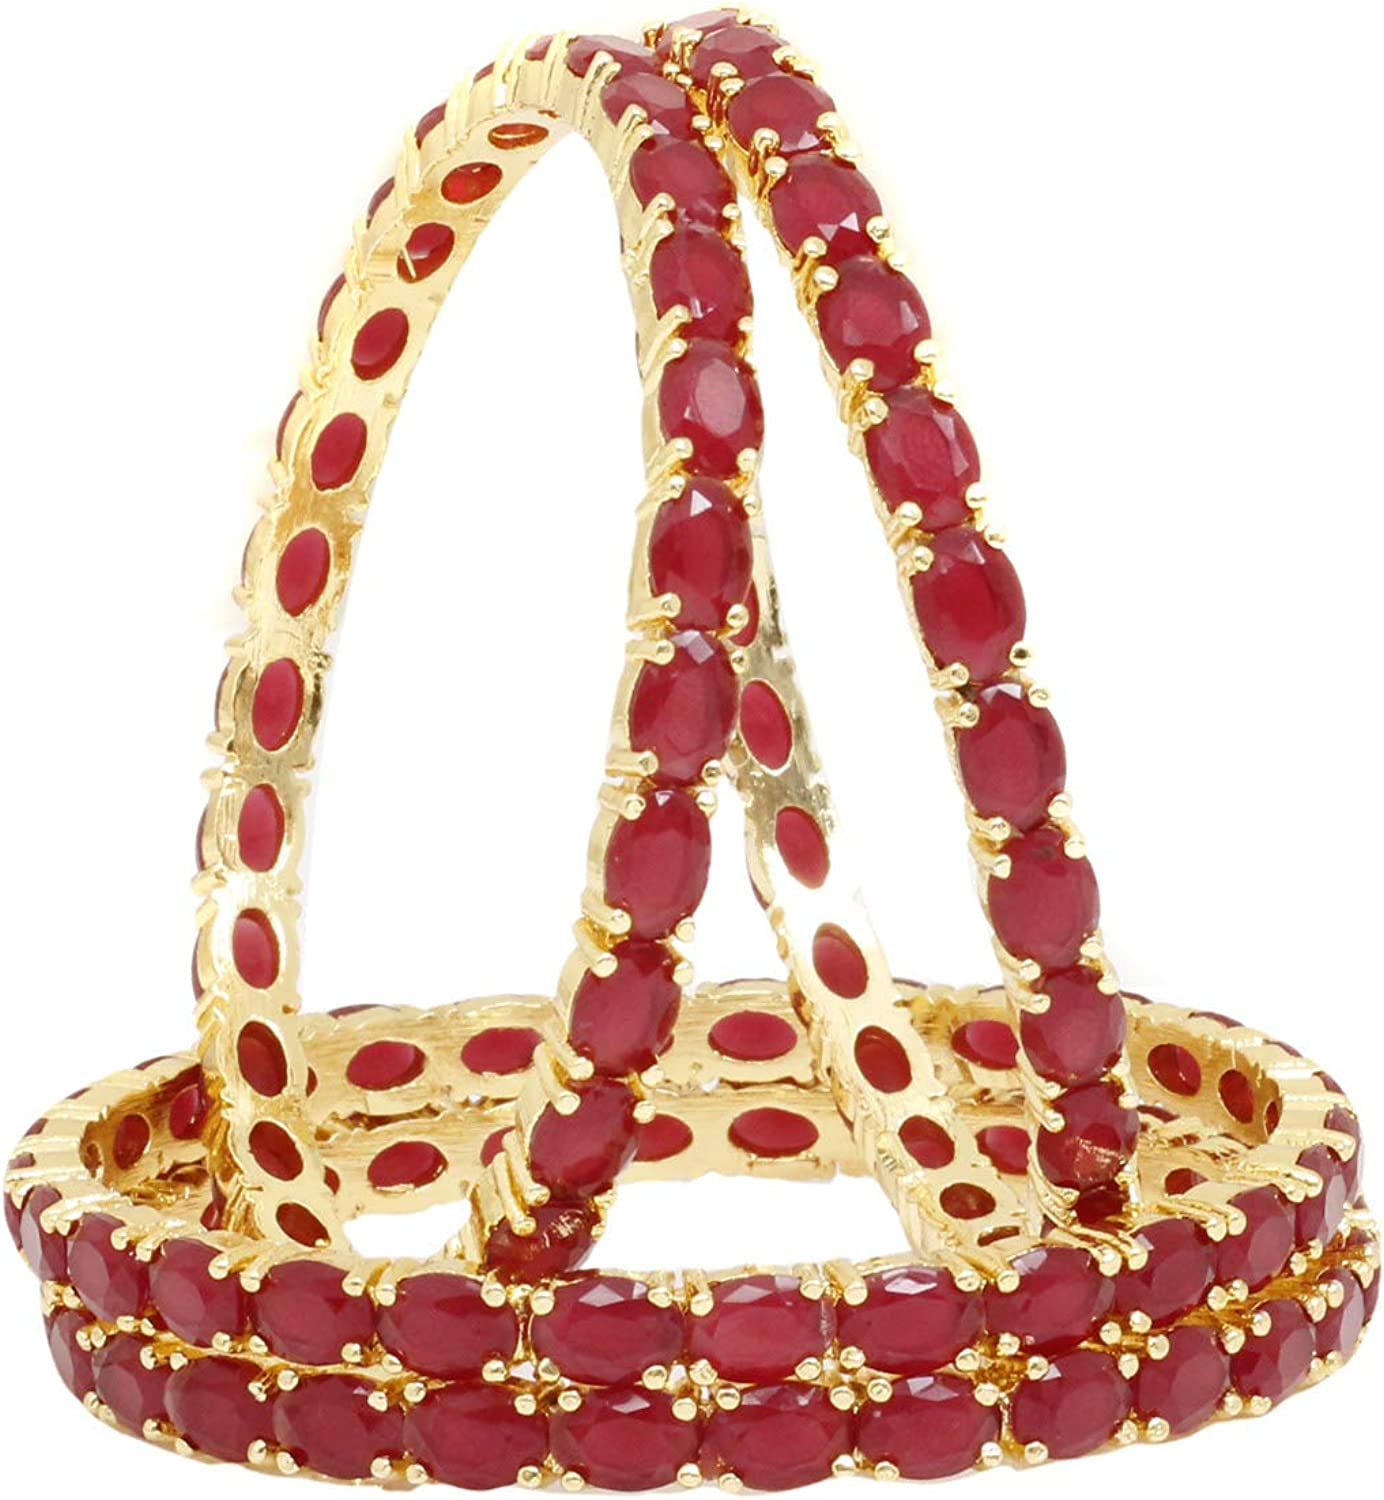 Sukh Collection Jewellery Indian Exclusive Fashionable Beautiful Gold Tone Ruby 4 Pcs American Diamond Made Bangle Bracelets Traditional Women Wedding Party wear Bangles Bridal Bollywood Jewelry